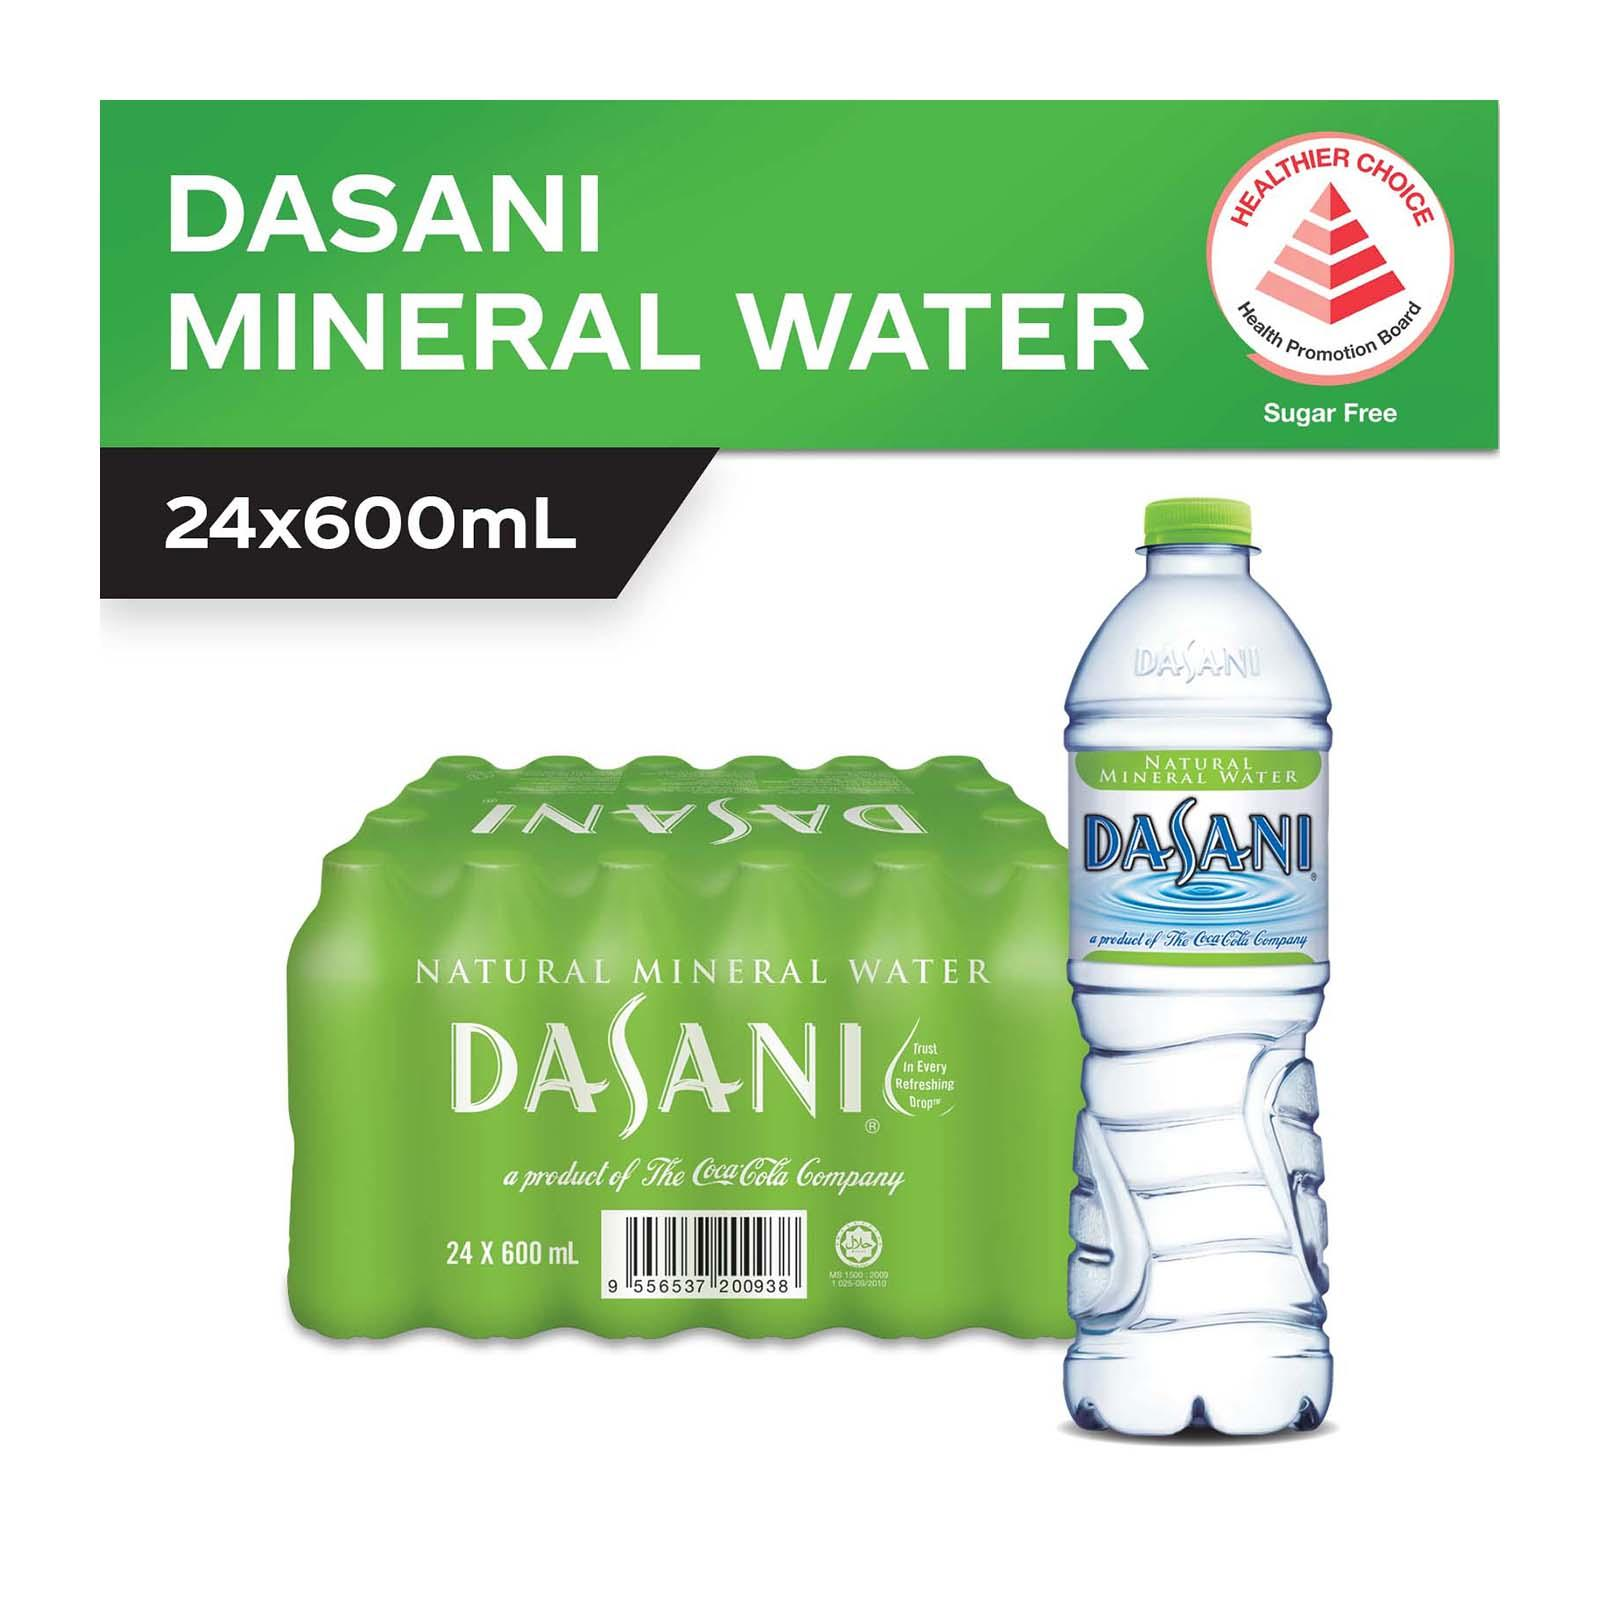 Dasani Mineral Water (24 x 600ml) - Case